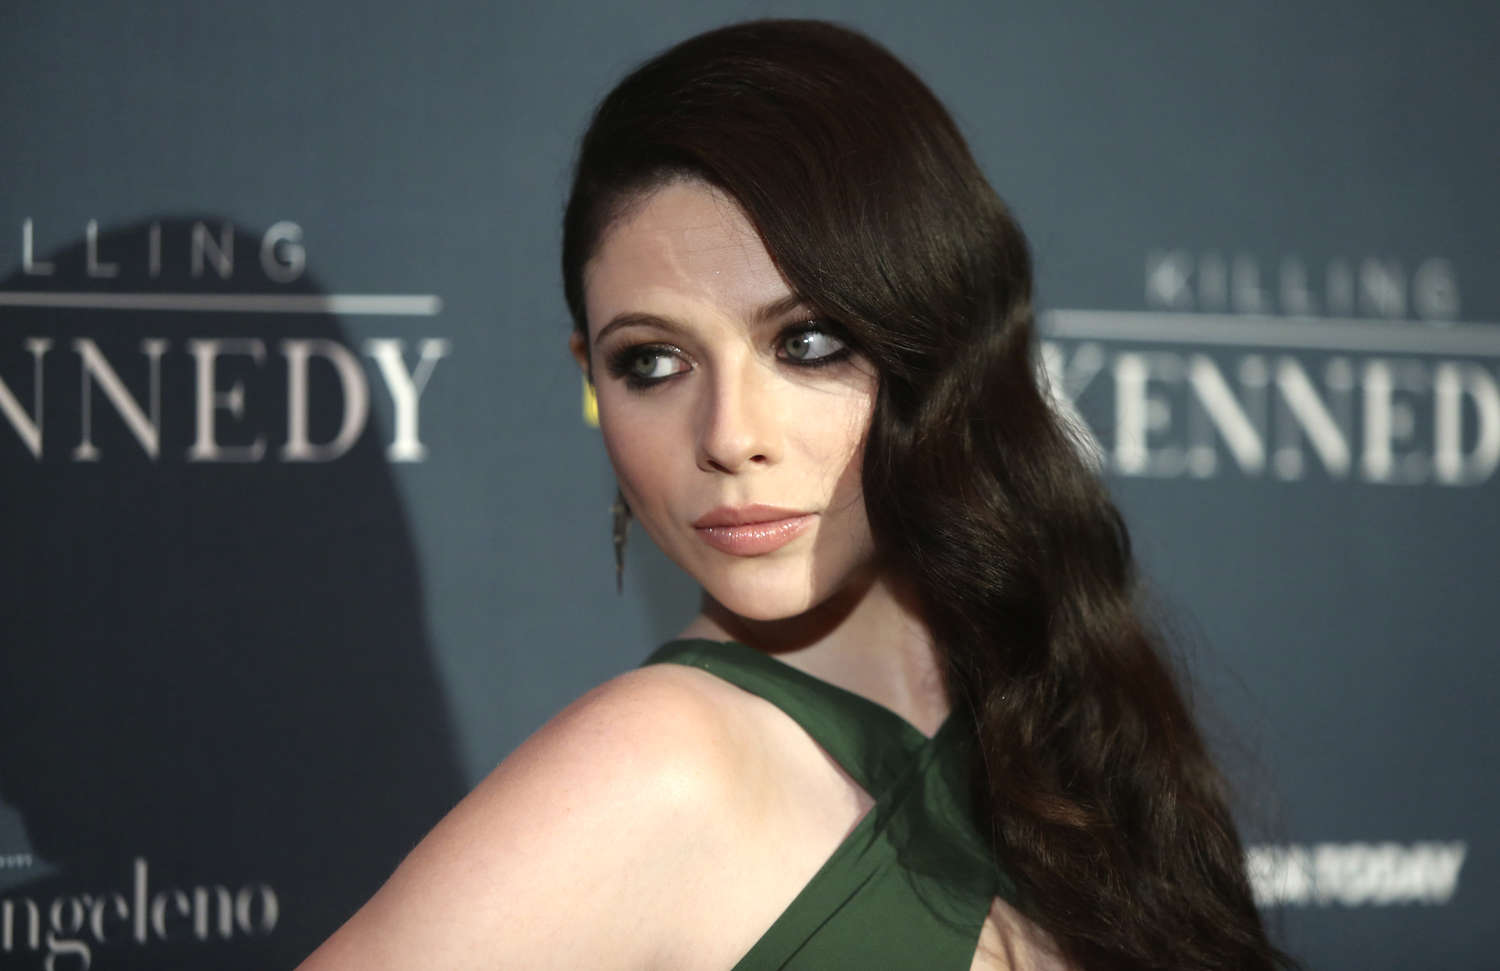 Killing kennedy michelle trachtenberg